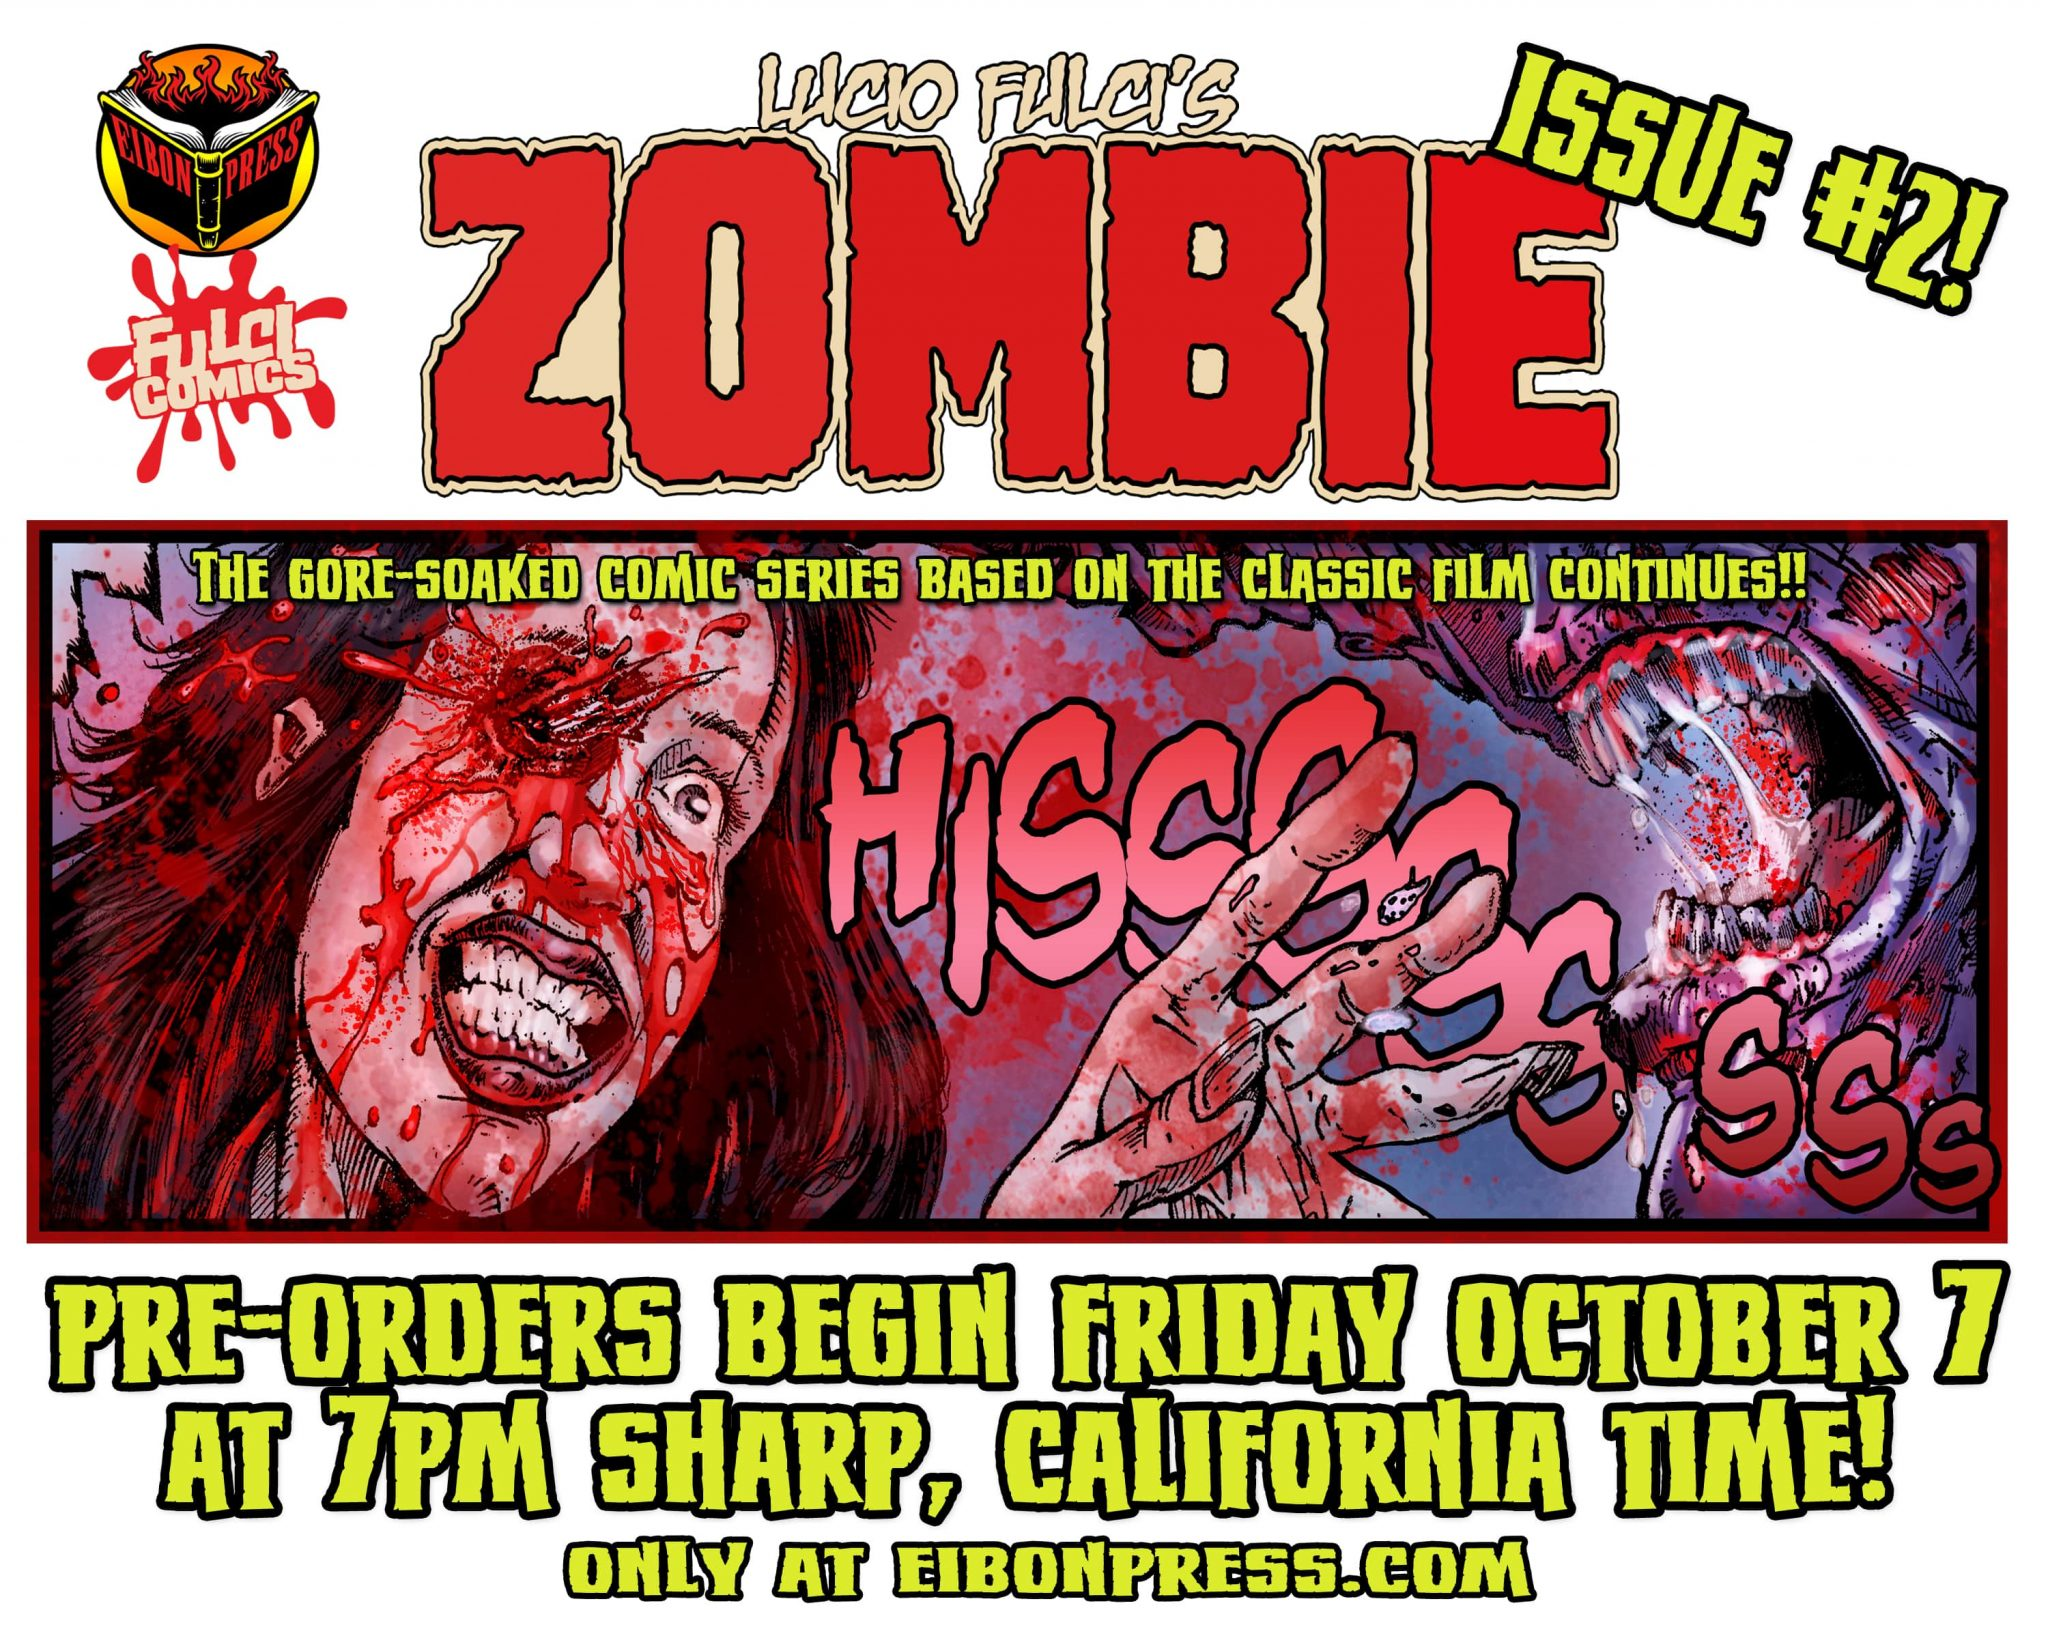 ZOMBIE 2 AD 3 min - Lucio Fulci's ZOMBIE #2 drops TODAY from Eibon Press at 7PM (PST)!